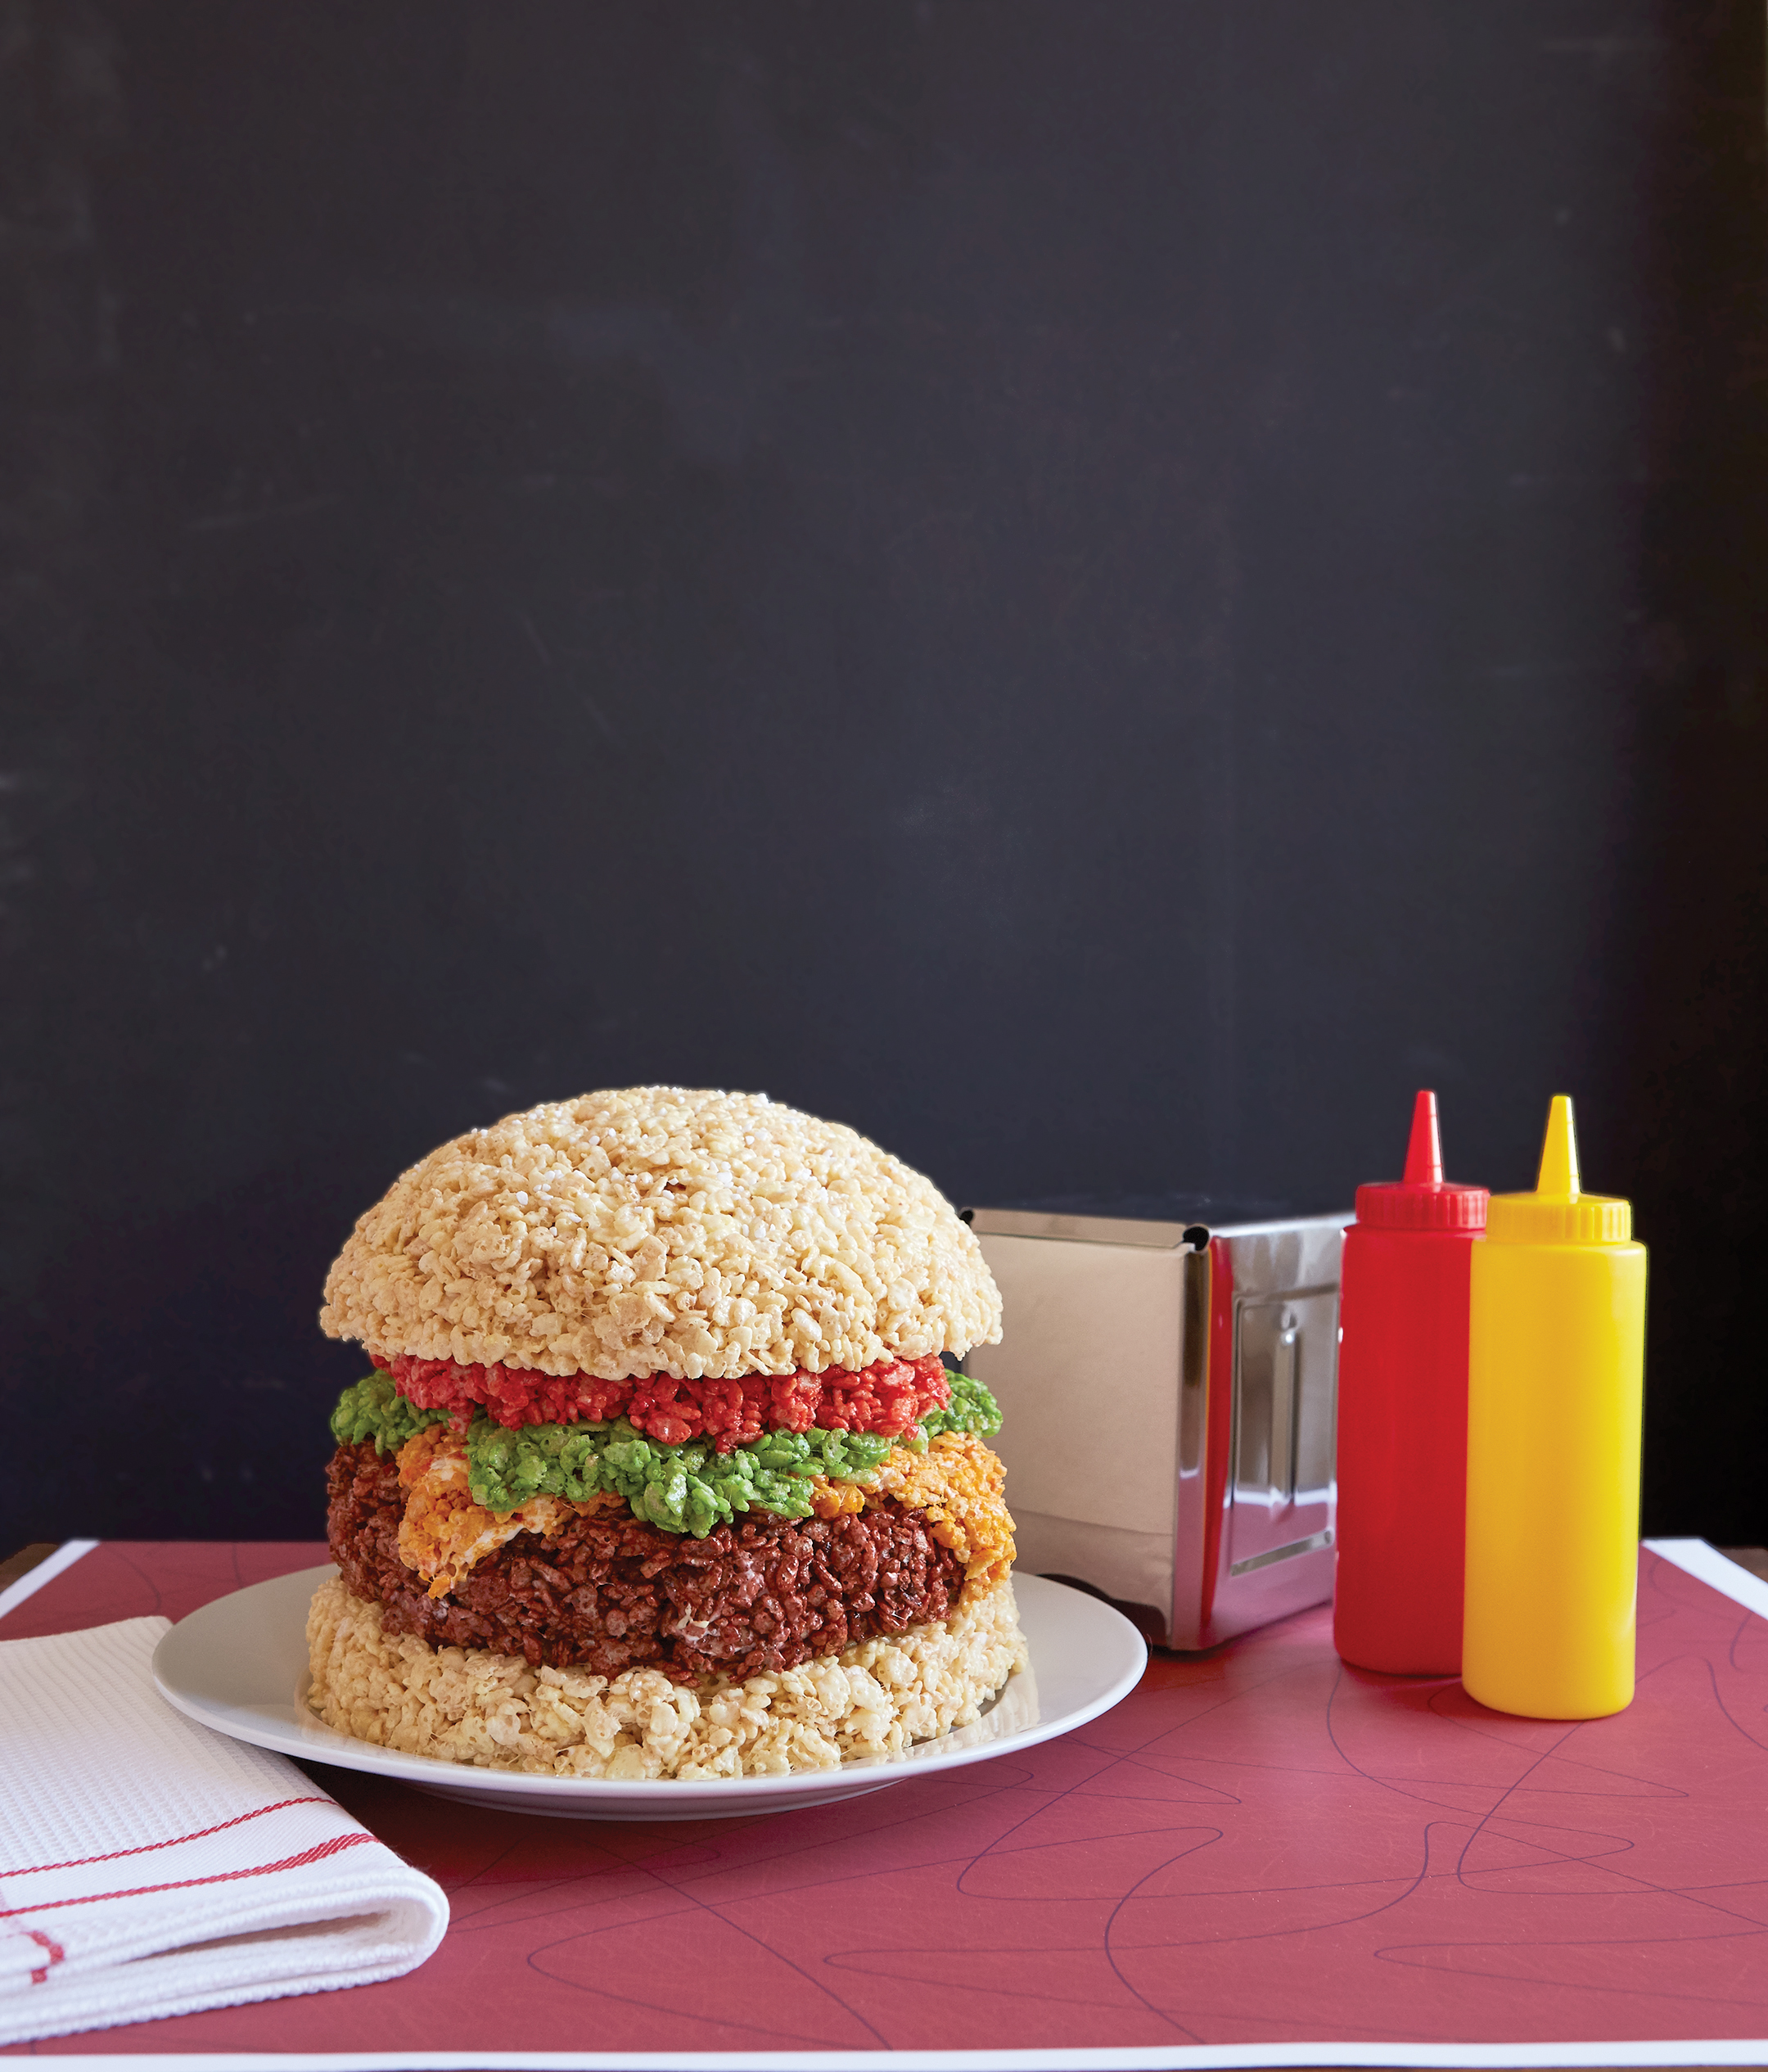 How to make rice krispies treats cheeseburgers recipe thrillist ccuart Image collections